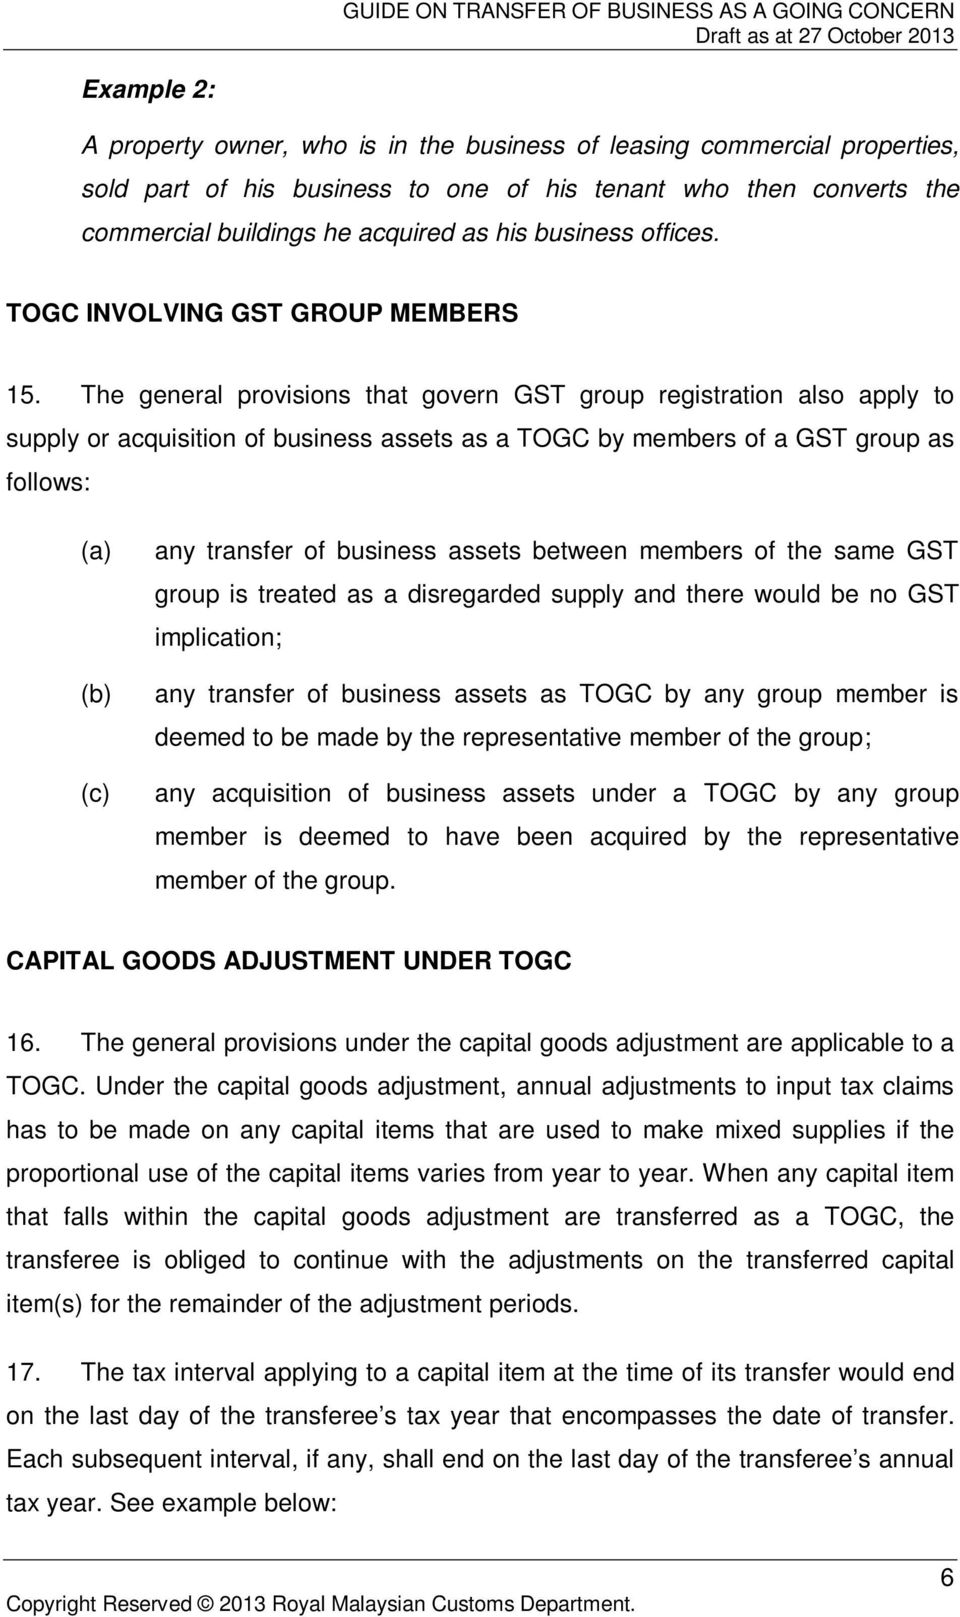 The general provisions that govern GST group registration also apply to supply or acquisition of business assets as a TOGC by members of a GST group as follows: any transfer of business assets